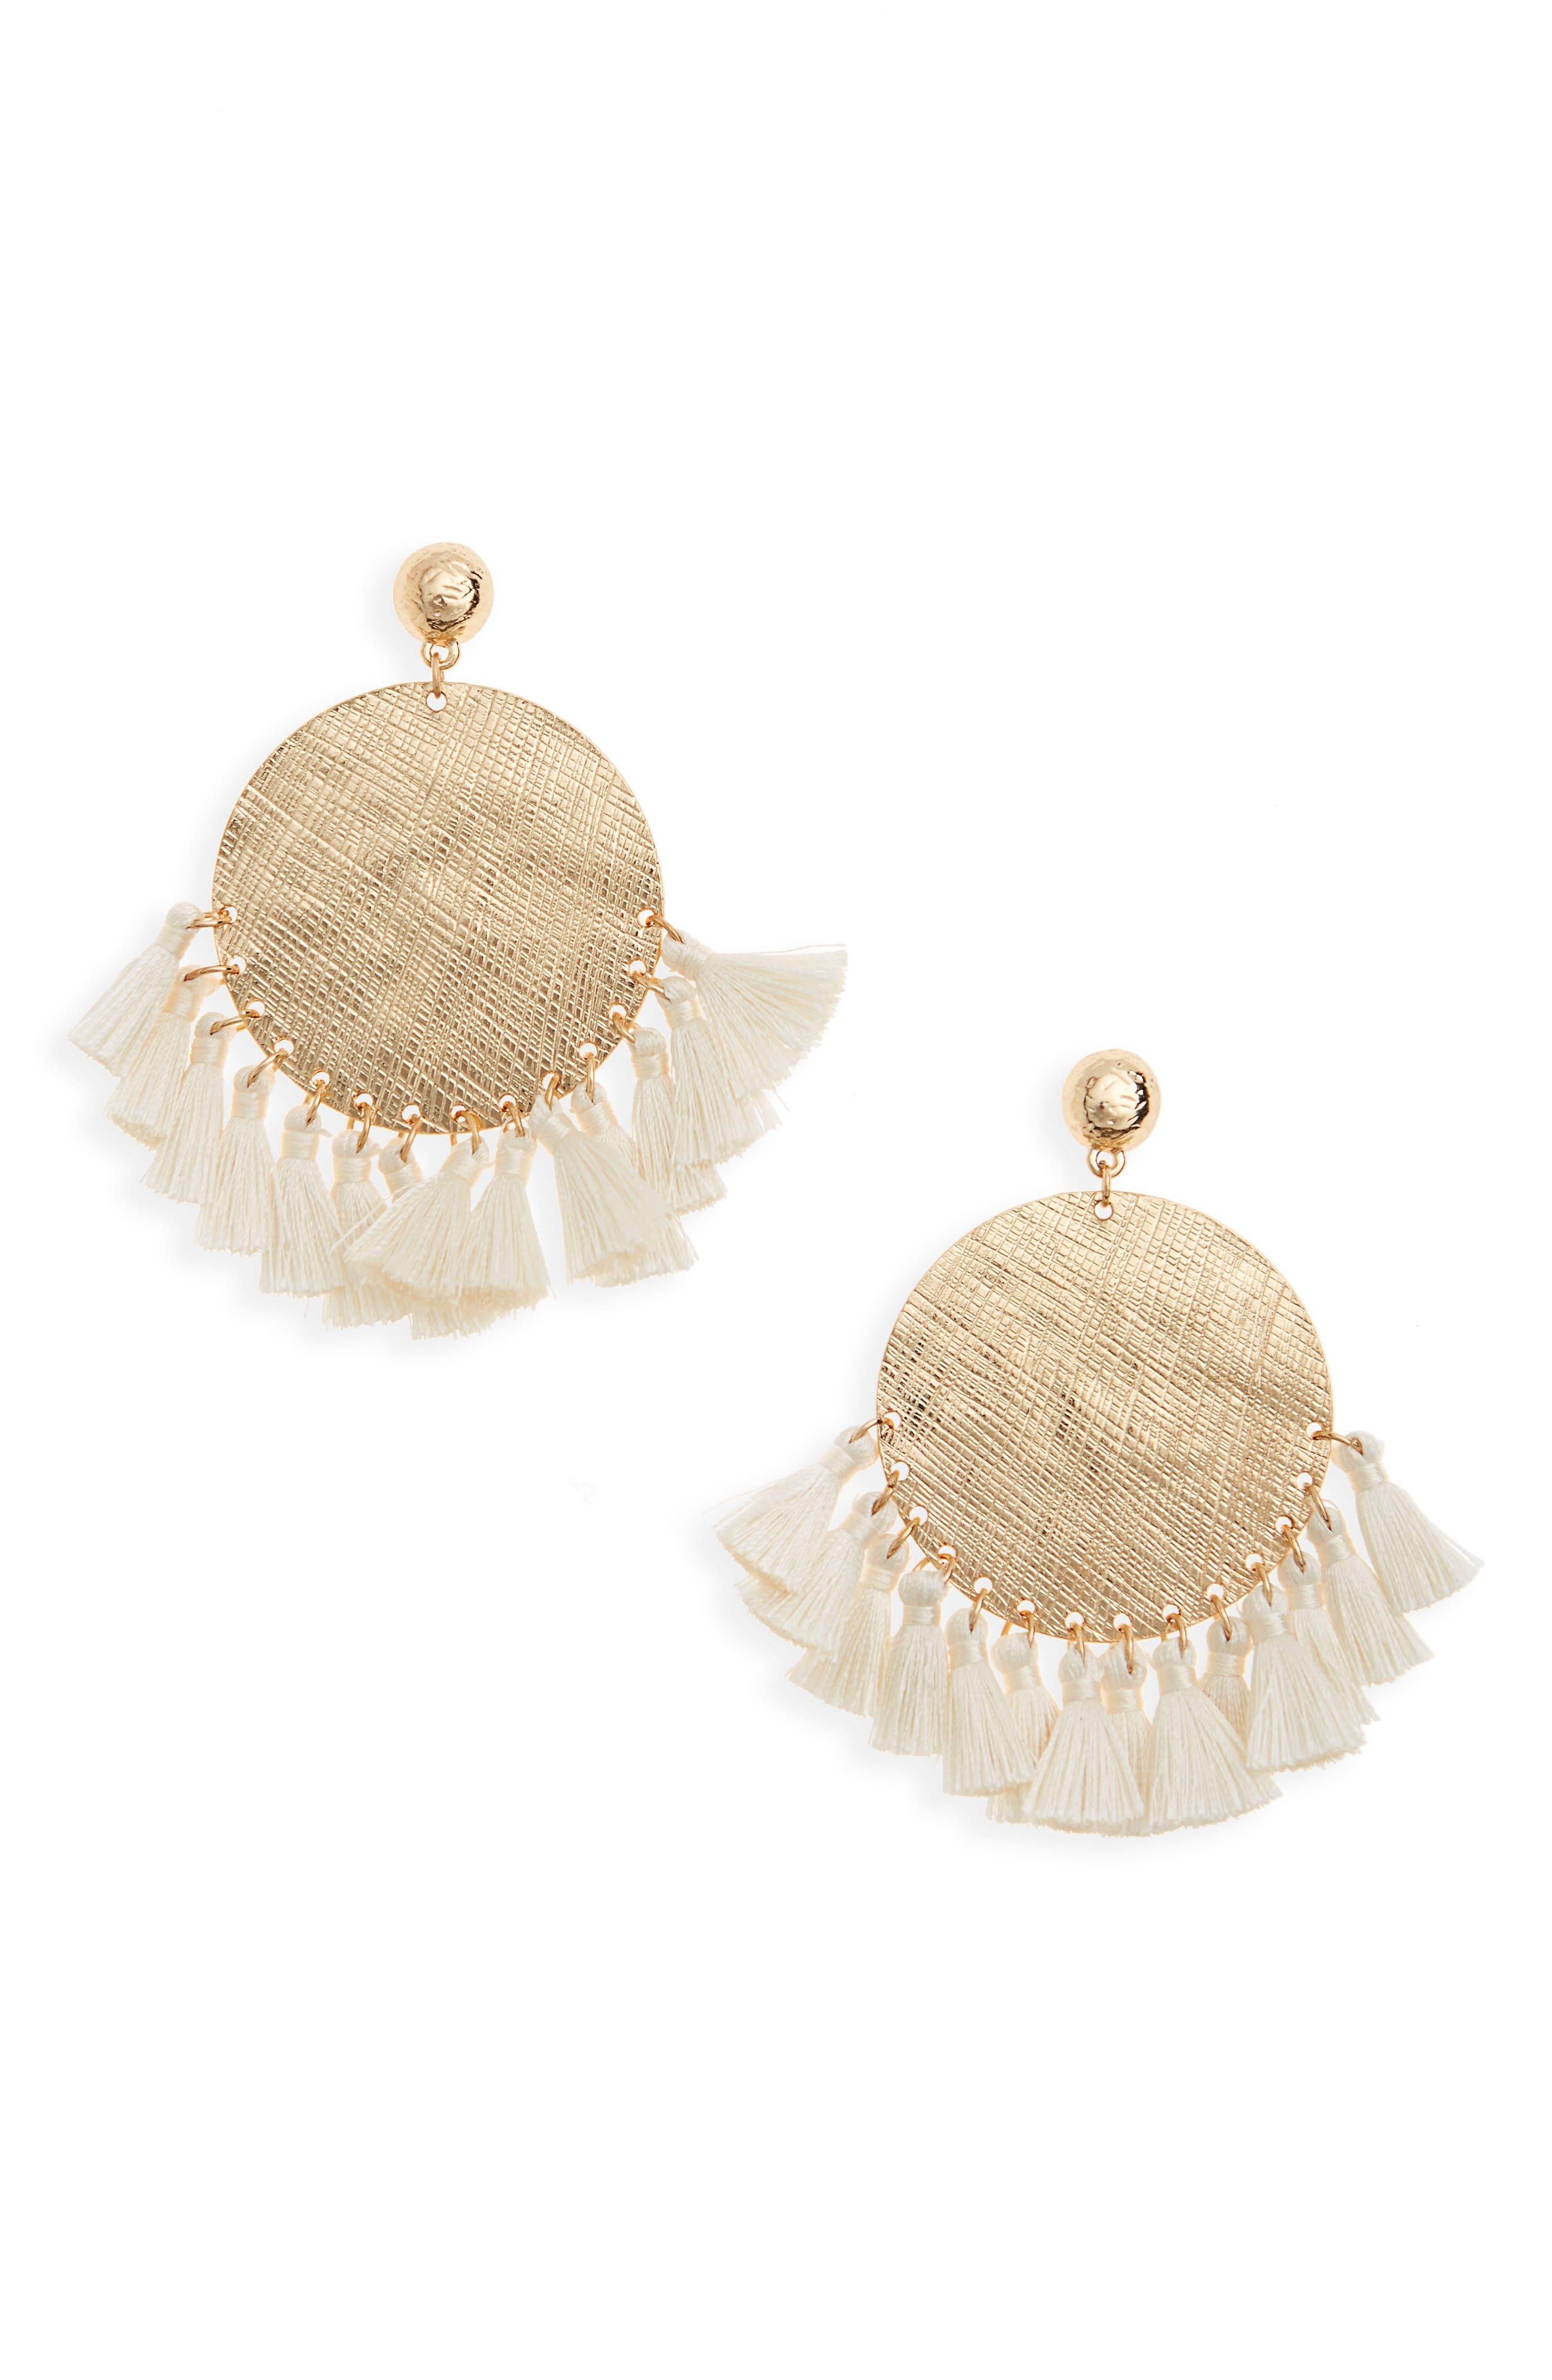 Baby Tassel Pounded Disk Earrings,                             Main thumbnail 1, color,                             710